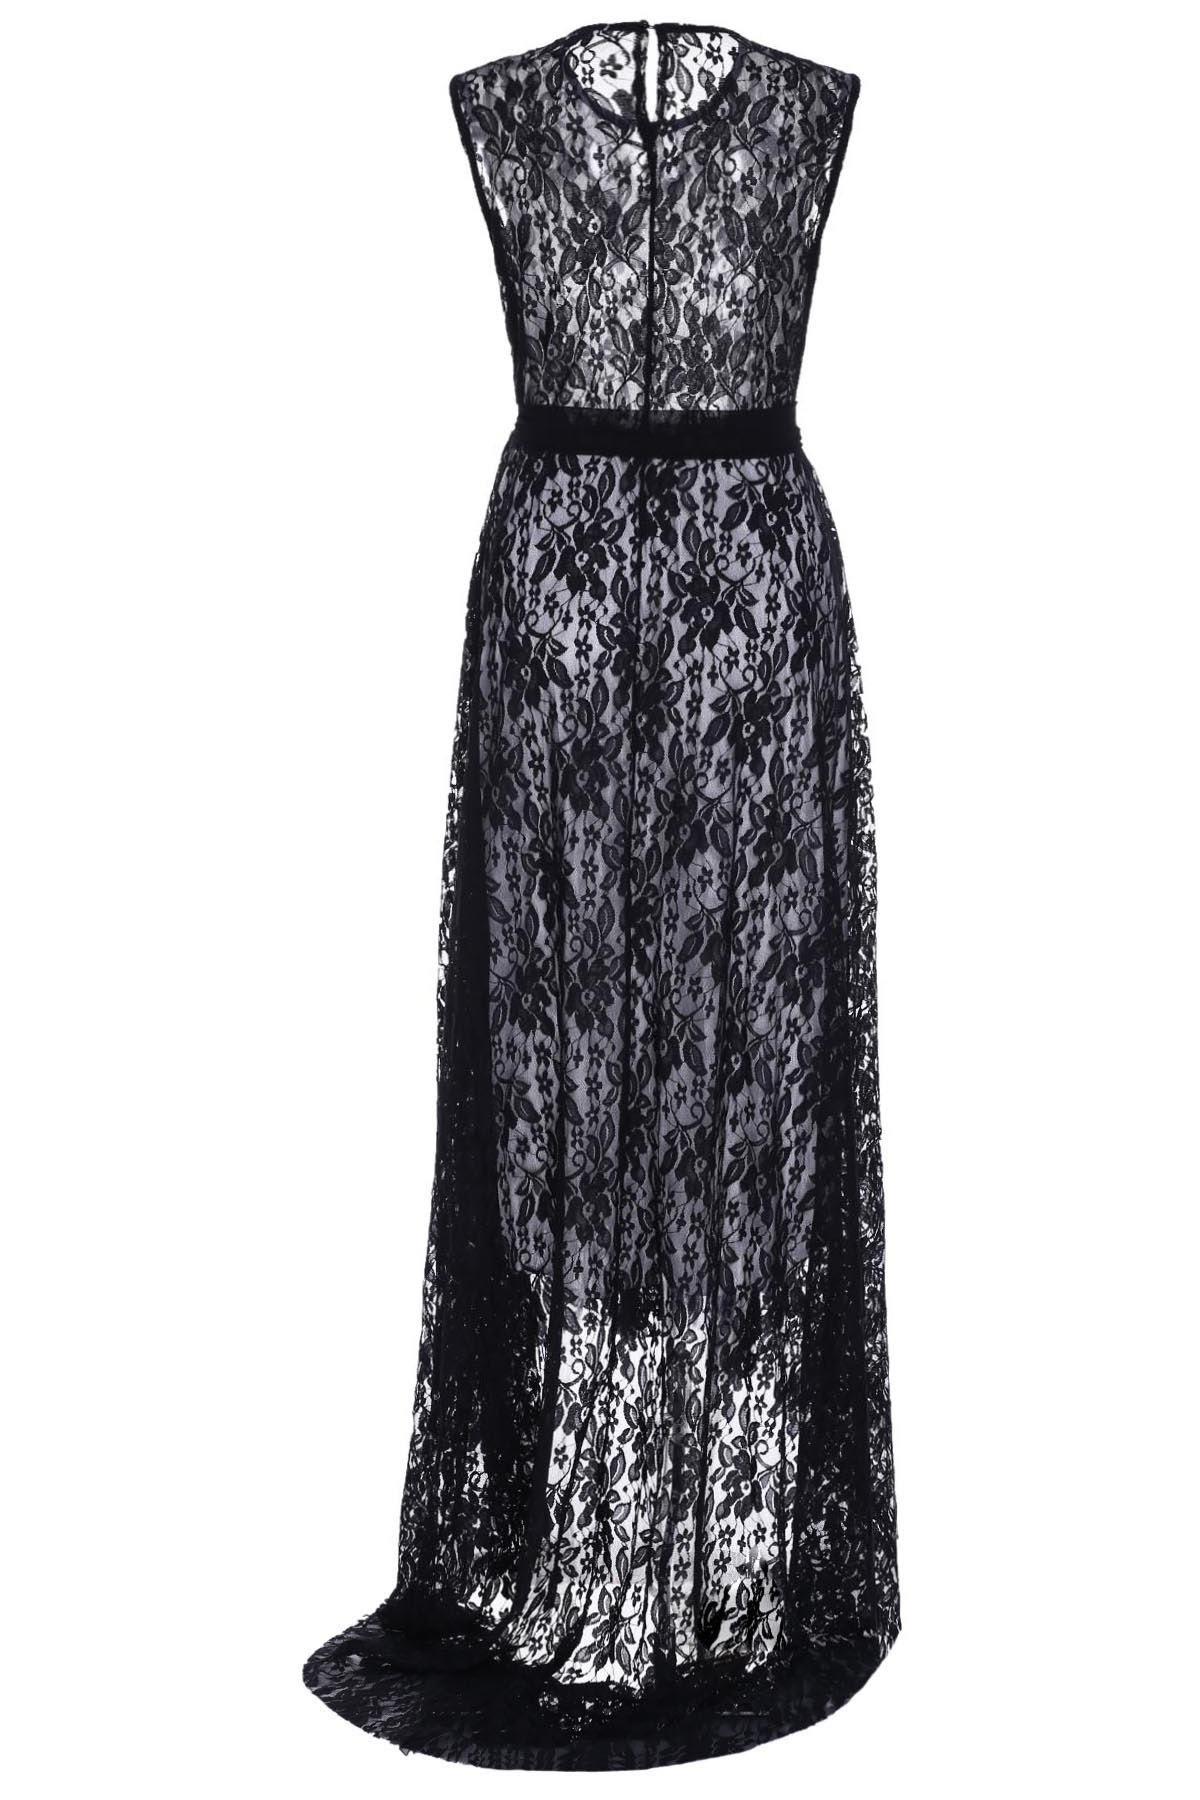 Fashionable Women's Scoop Neck Sleeveless Lace Dress - BLACK XL